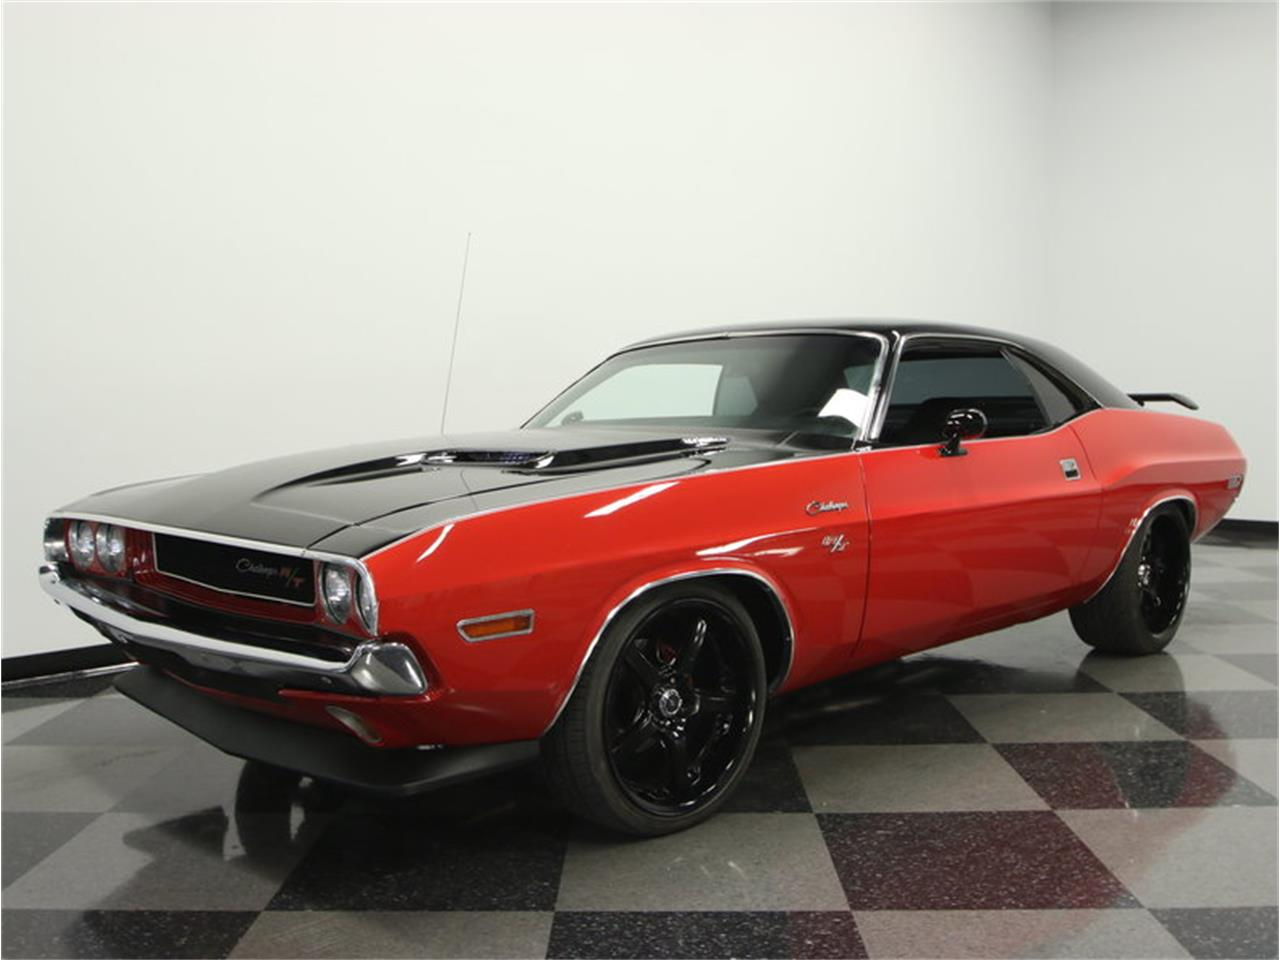 Pro Touring Cars For Sale >> For Sale 1970 Dodge Challenger R T Pro Touring In Lutz Florida